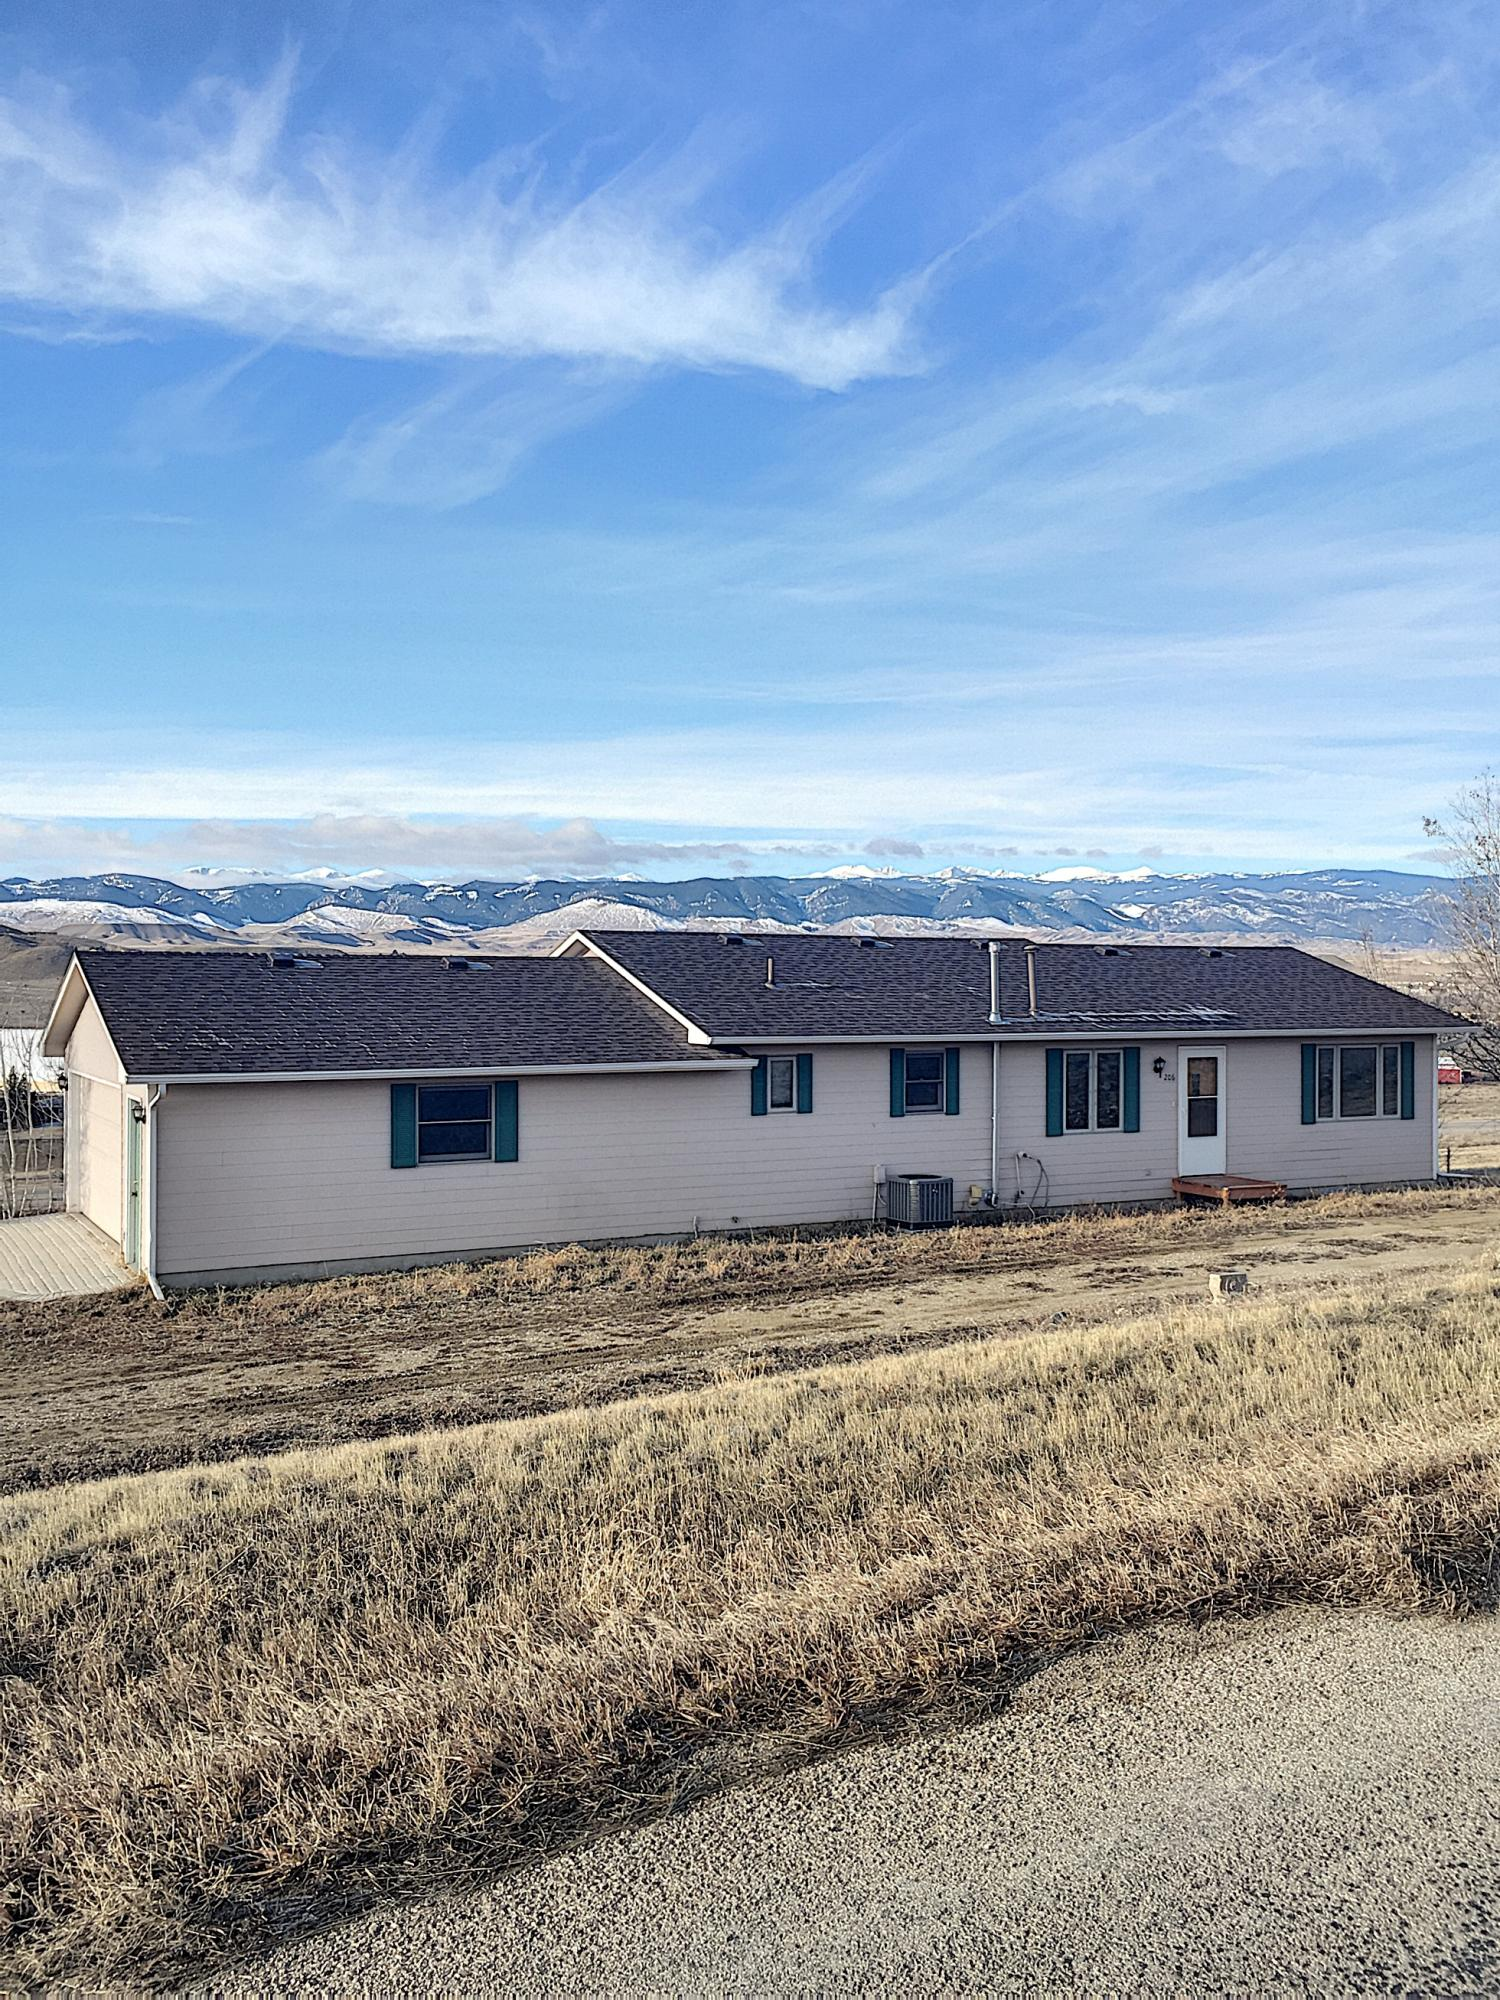 206 Rock Creek Road, Buffalo, Wyoming 82834, 3 Bedrooms Bedrooms, ,3 BathroomsBathrooms,Residential,For Sale,Rock Creek,18-24